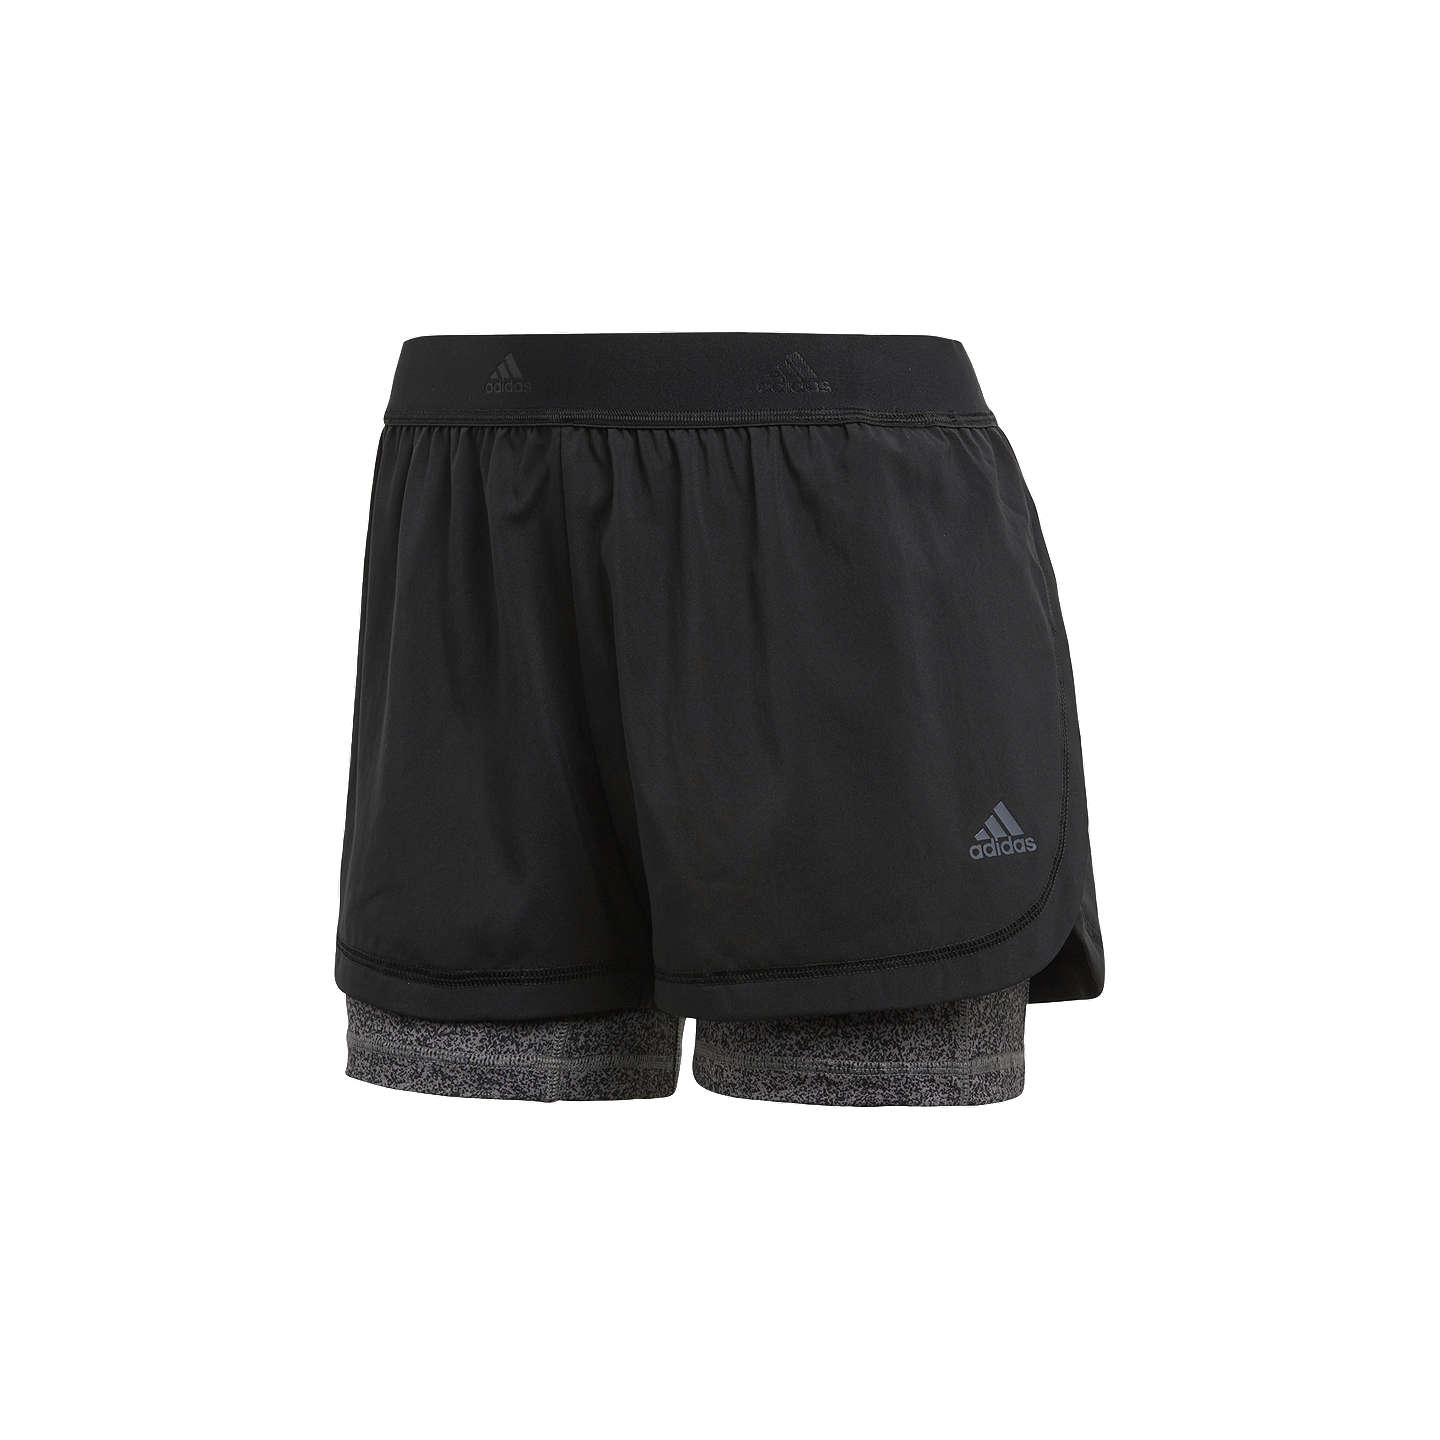 Adidas Two In One Printed Training Shorts, Black by Adidas